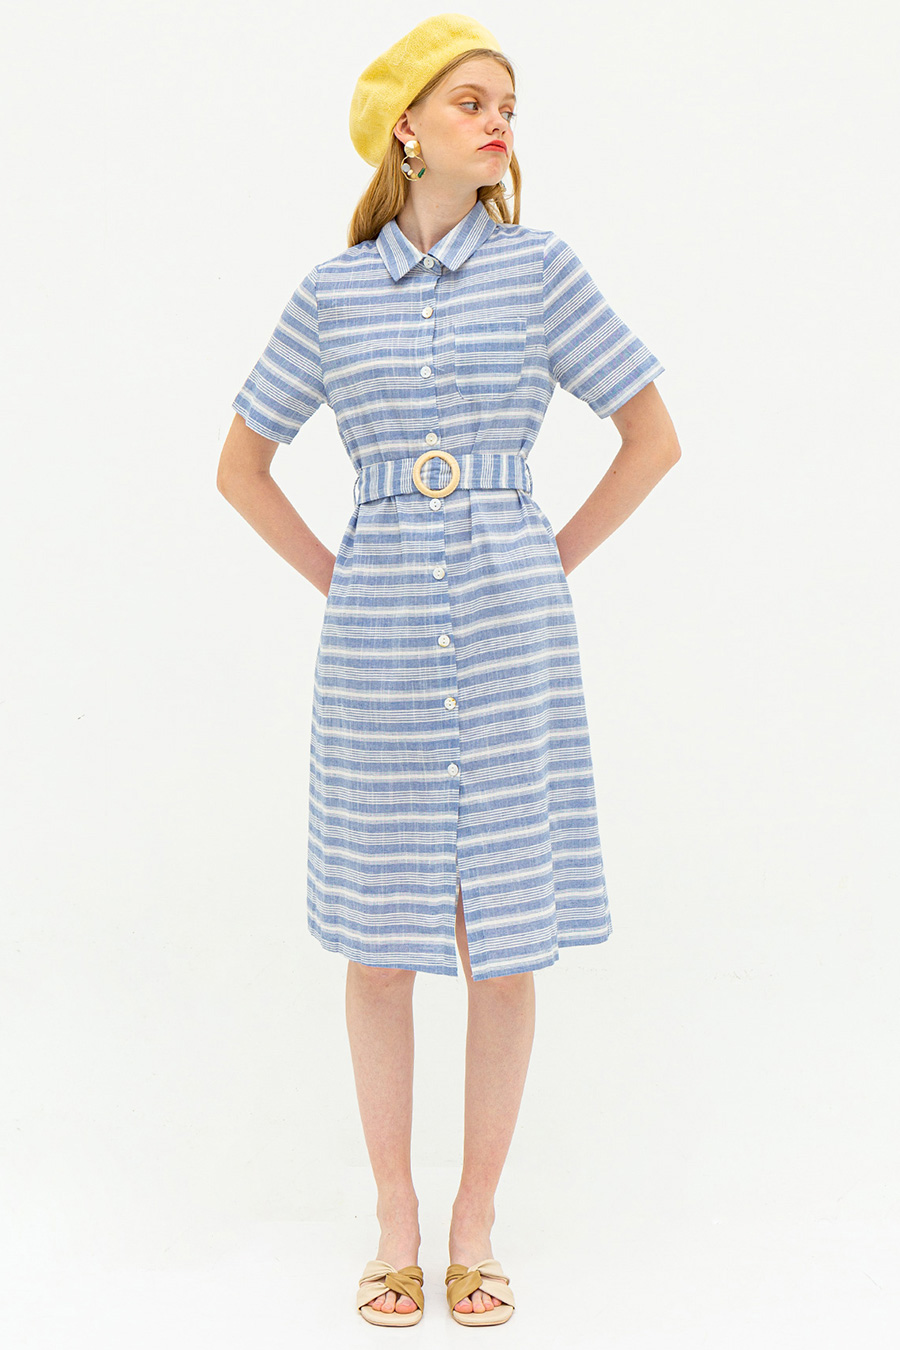 MAIDA DRESS - BREEZY STRIPE [BY MODPARADE]